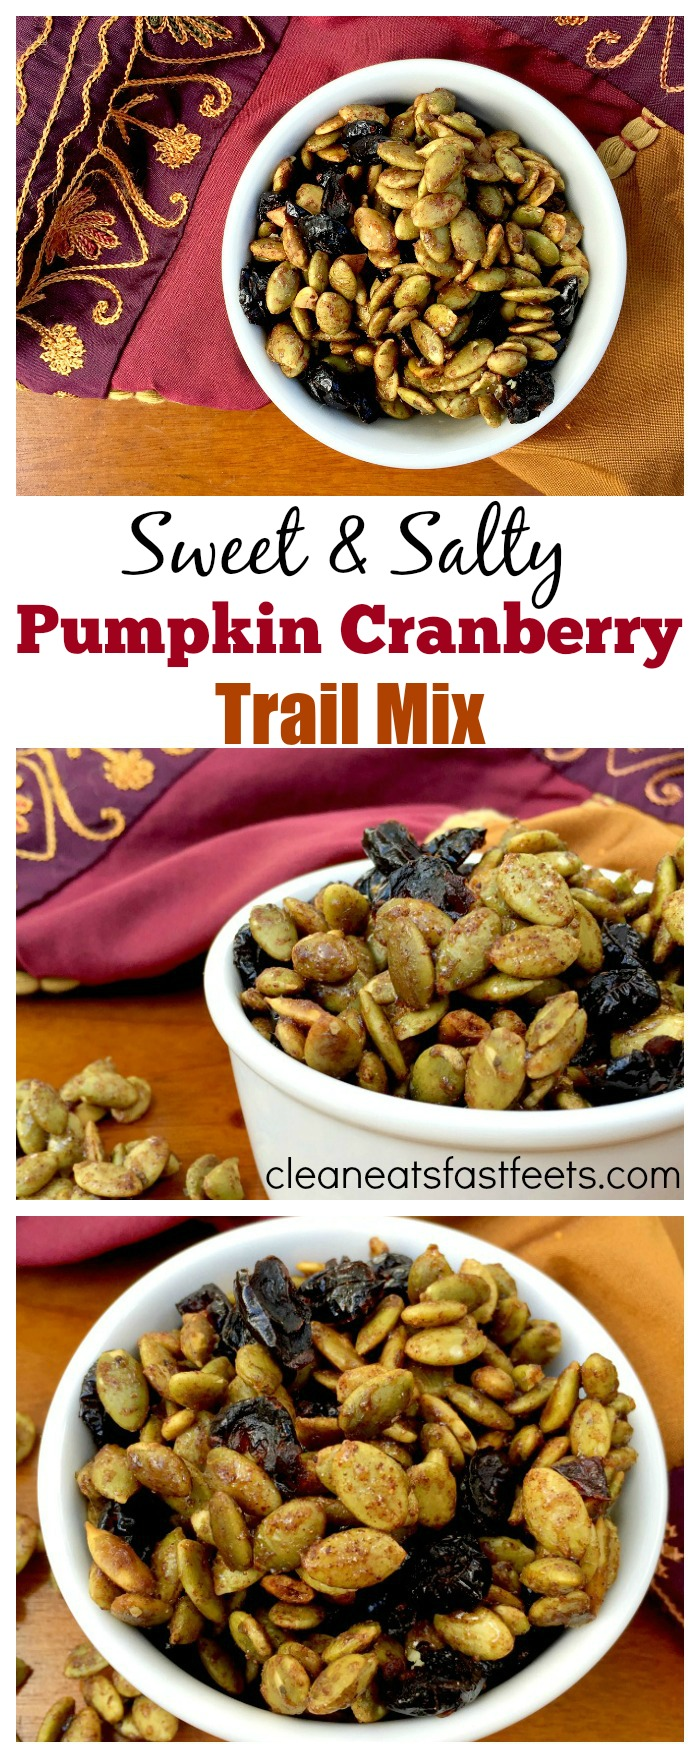 Pumpkin Cranberry Trail Mix. A sweet, salty and satisfying combo to titillate your taste buds.